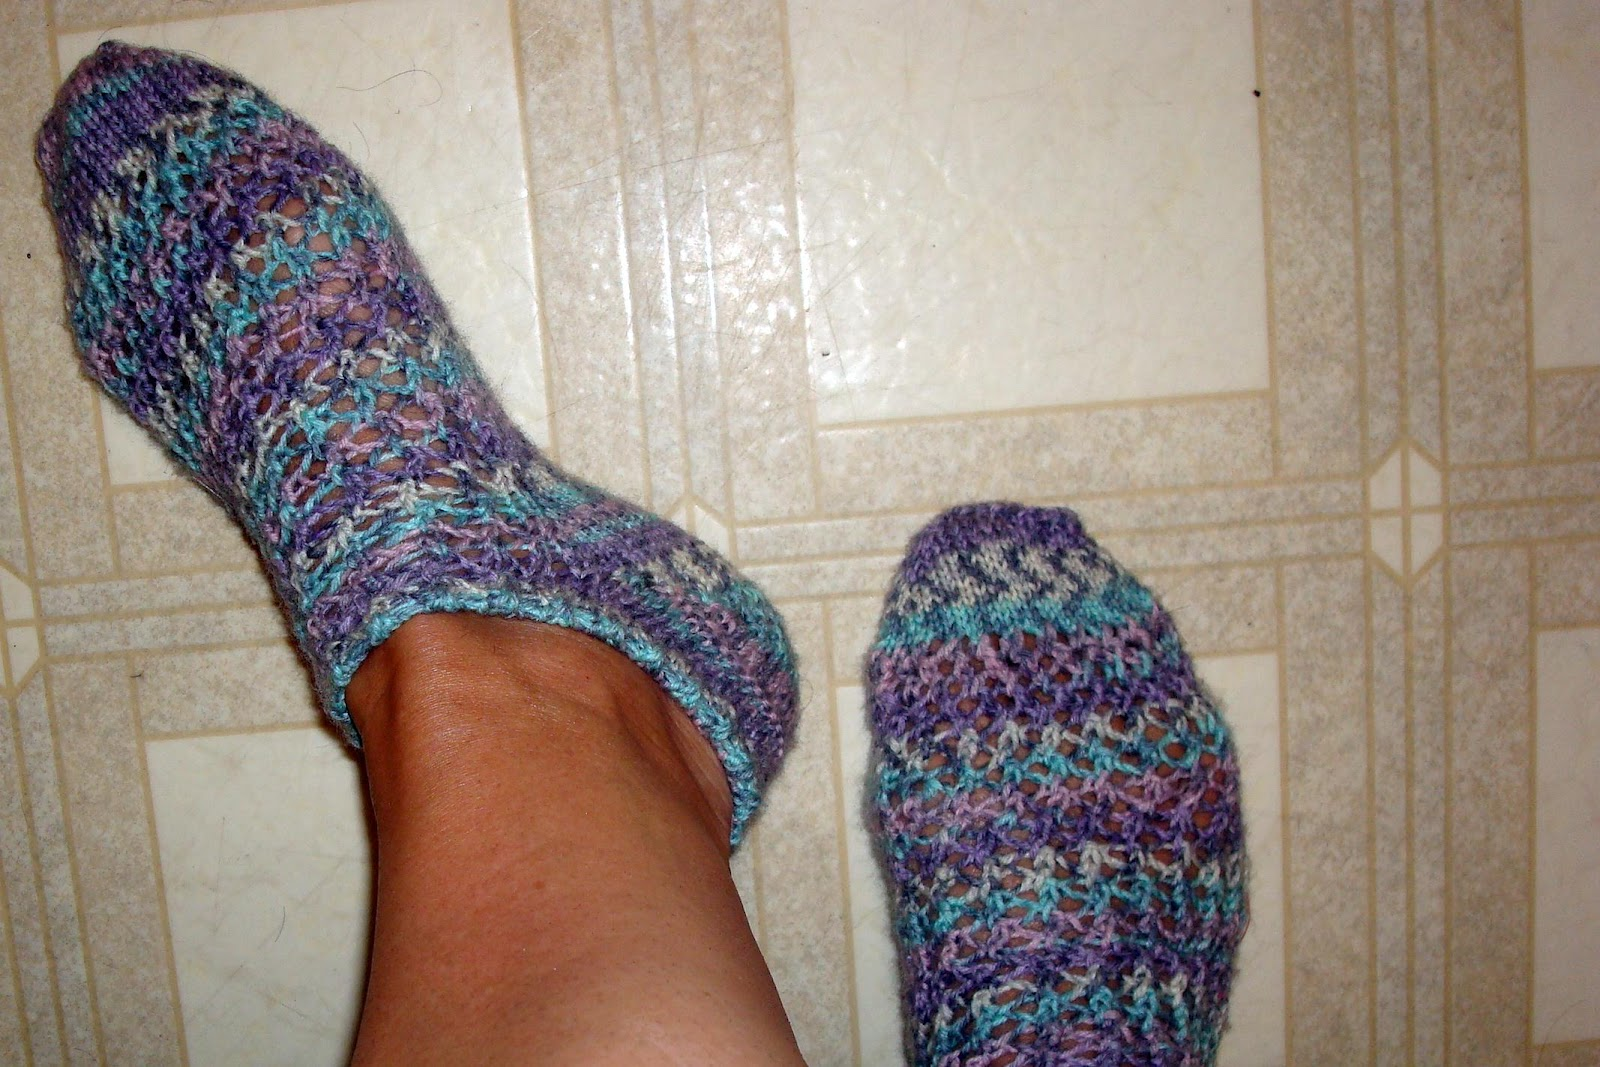 Knitting Patterns Footie Socks : Cindy Quilts: On My Needles Friday